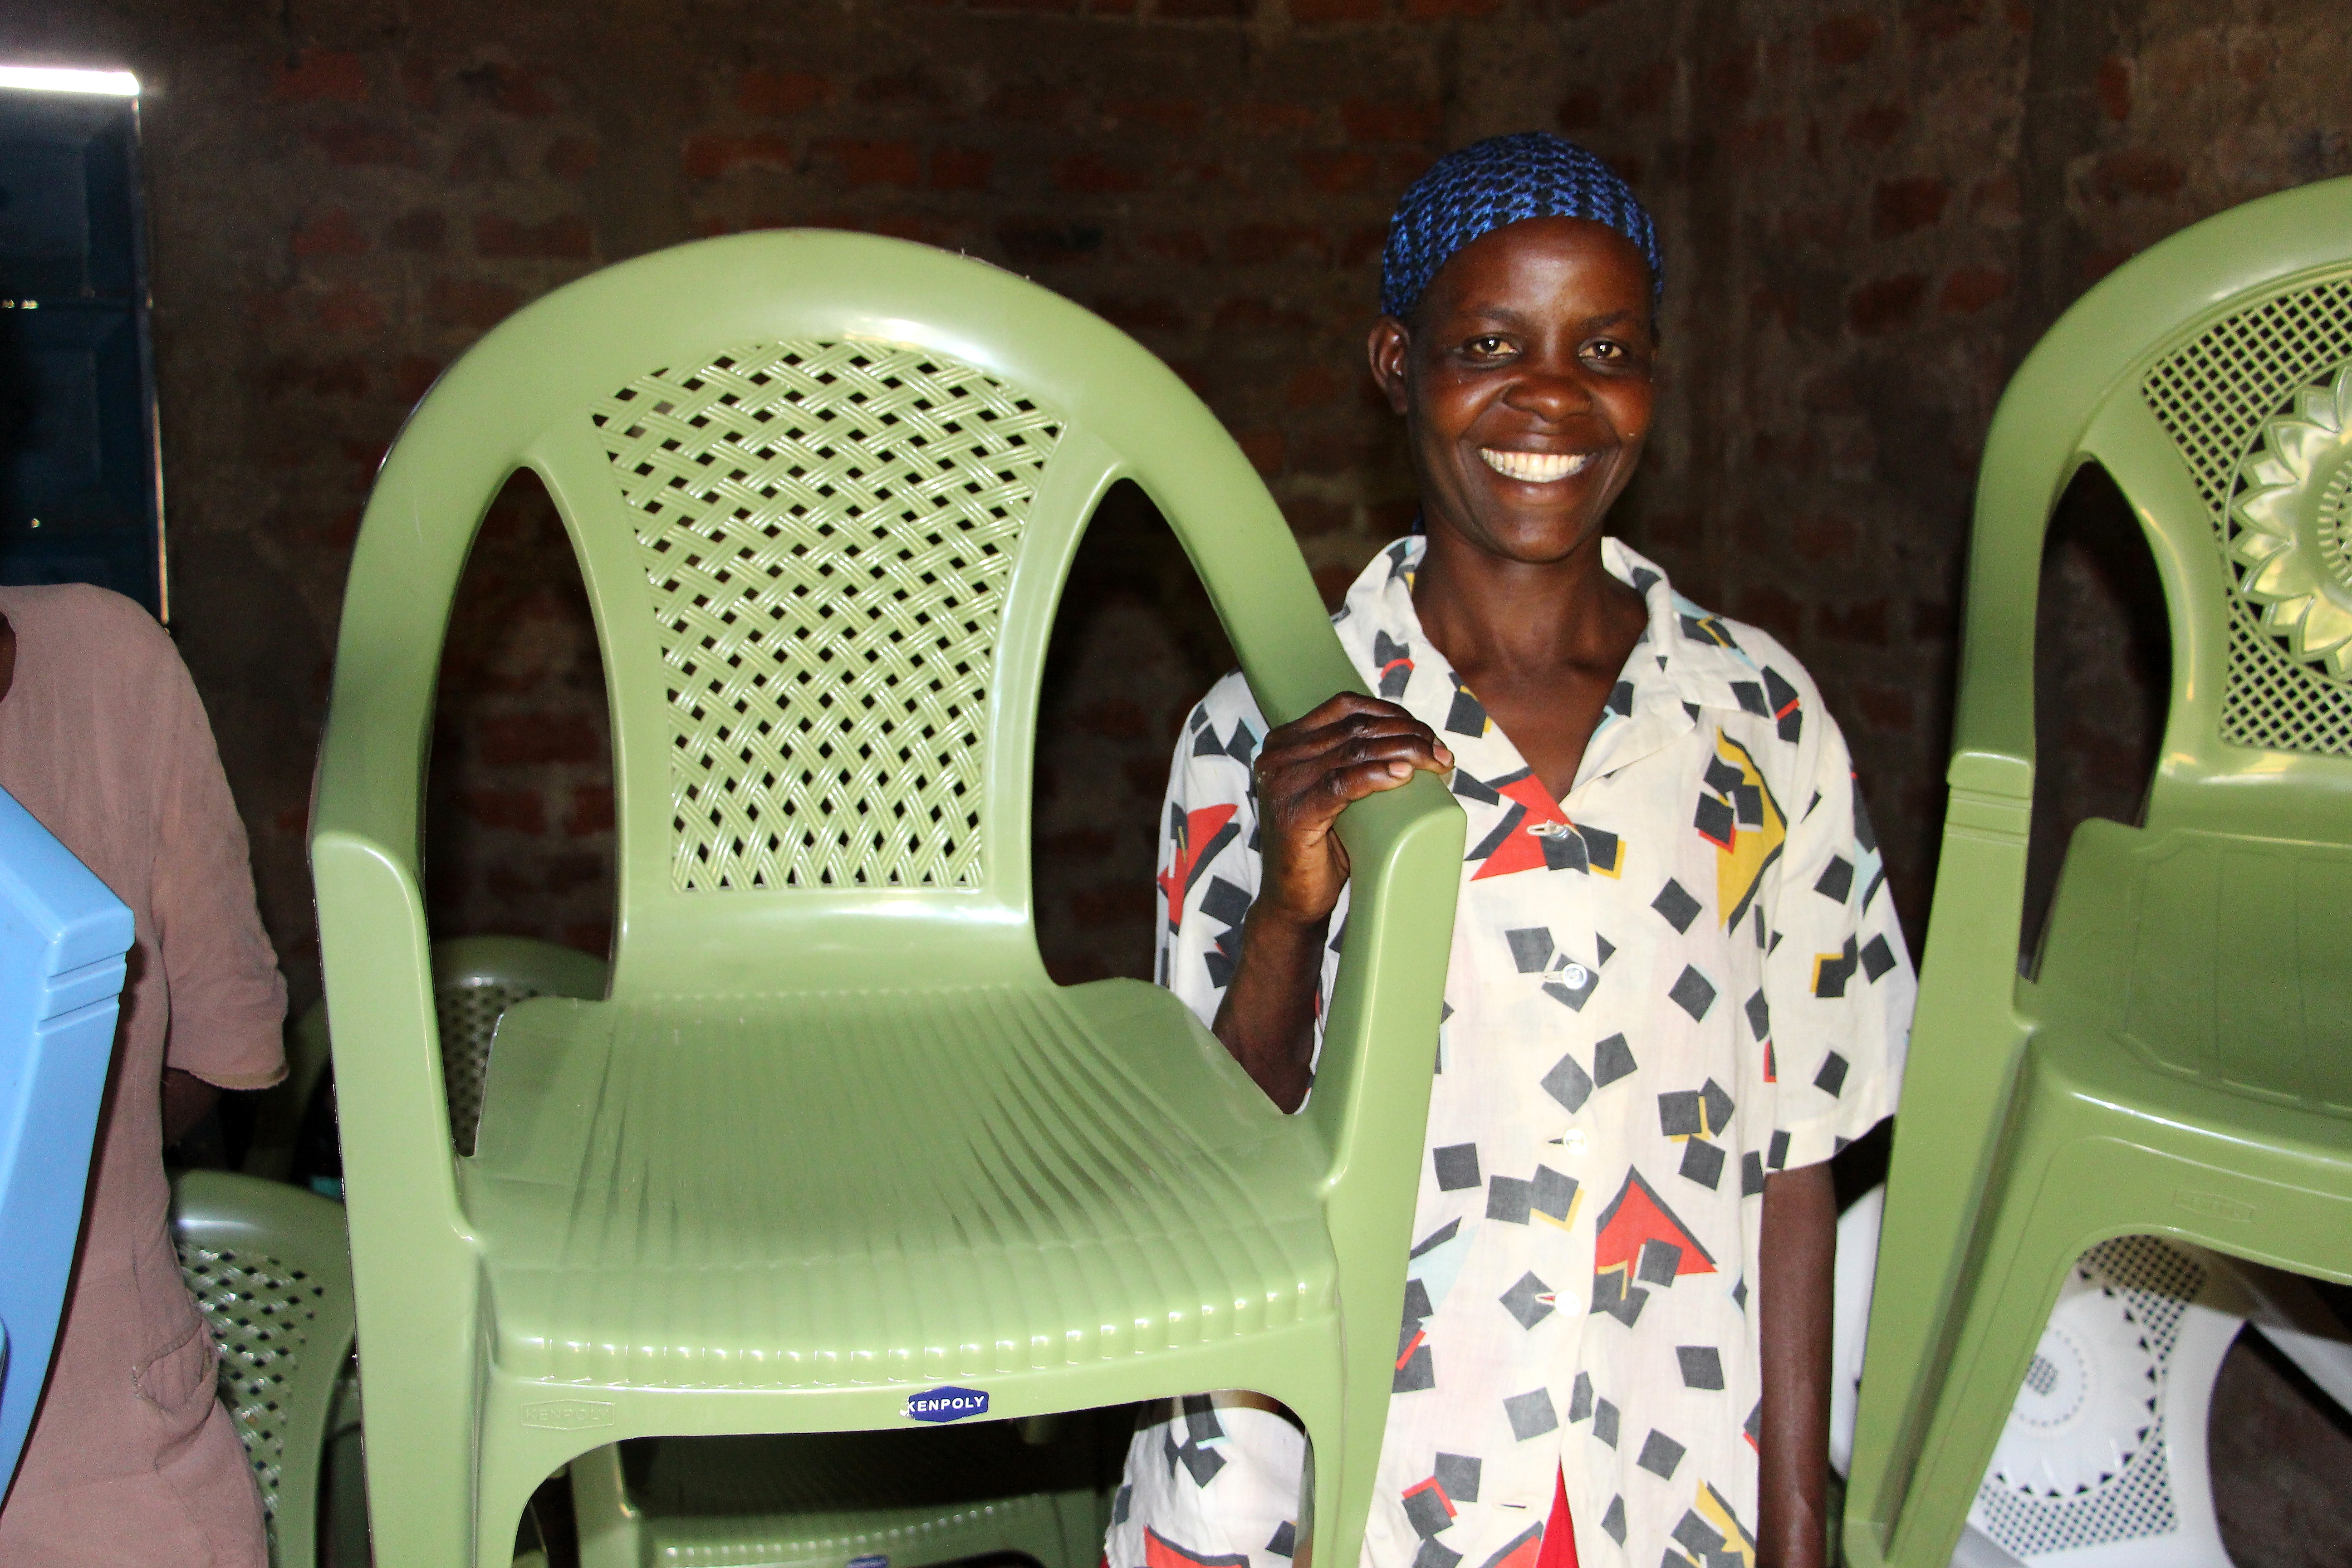 Lydya Nanjala shows off one of the plastic chairs her Village Enterprise business savings group rents out for events